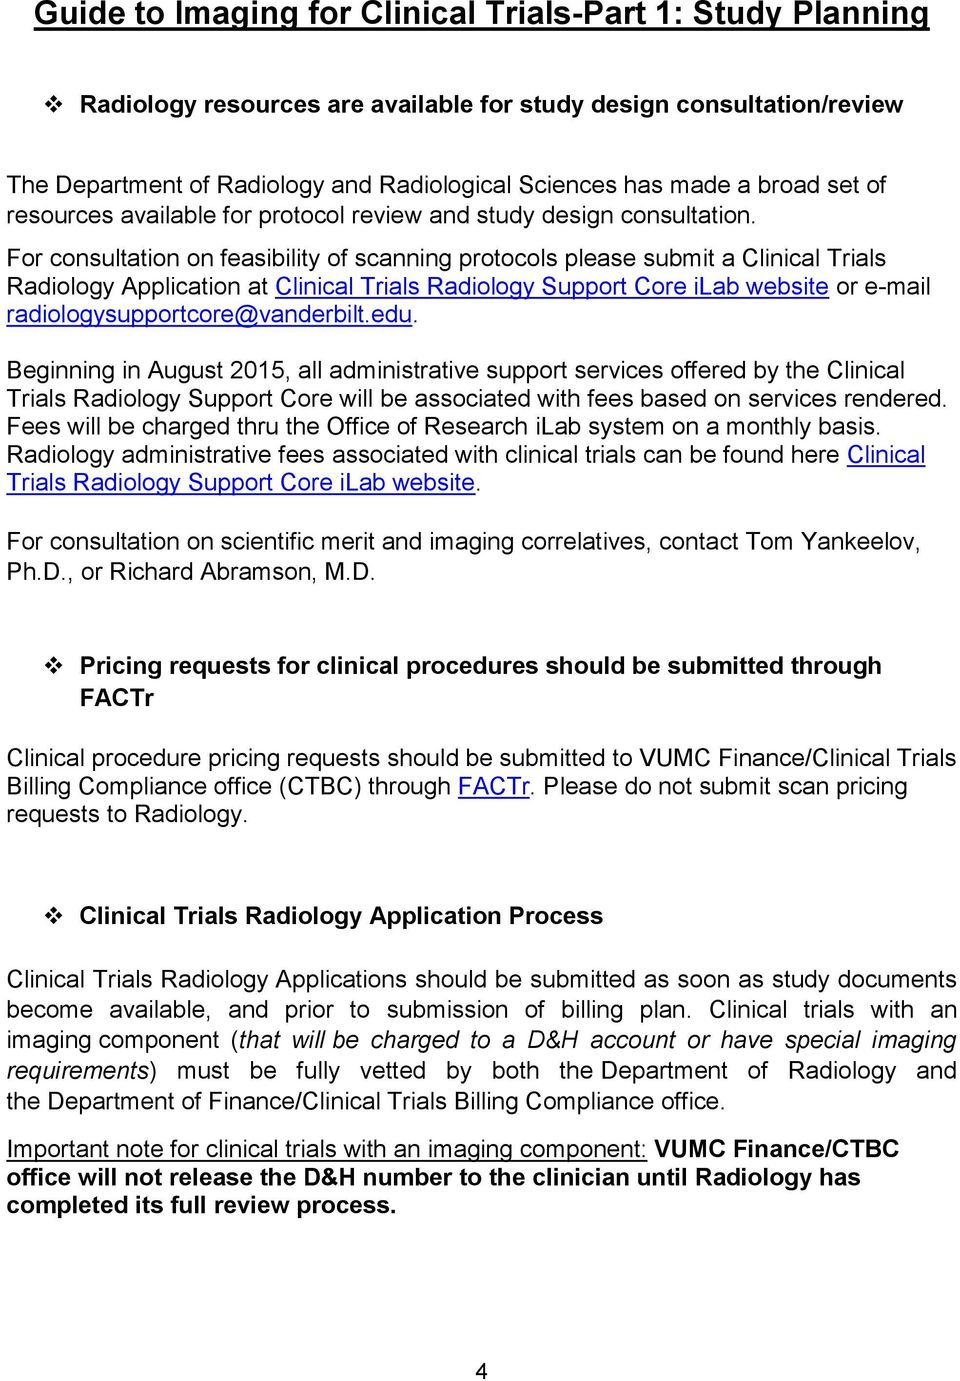 Imaging for Clinical Trials at Vanderbilt University Medical